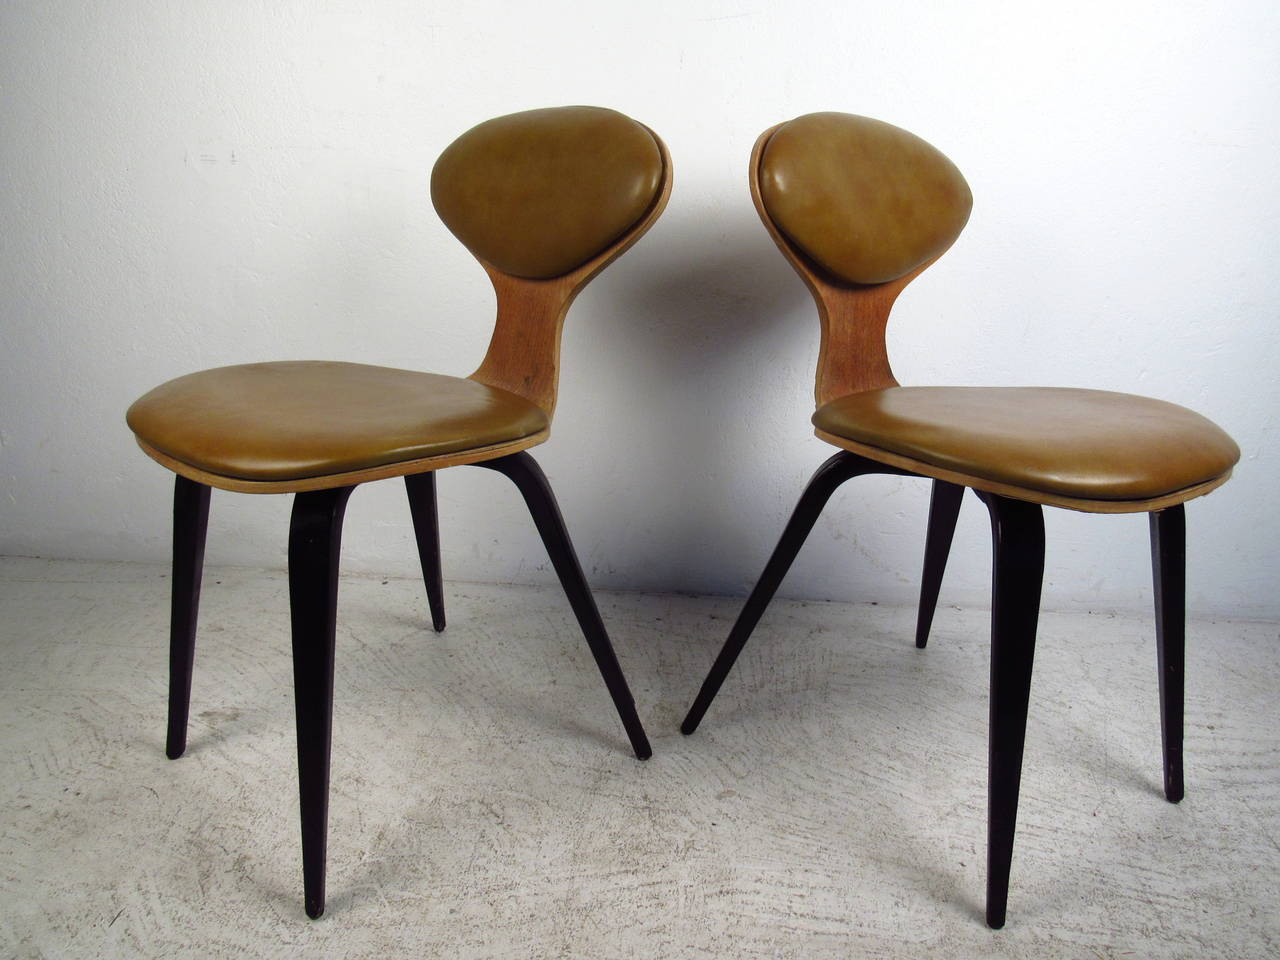 American Pair Of Mid Century Modern Bentwood Chairs In The Style Of Norman  Cherner For